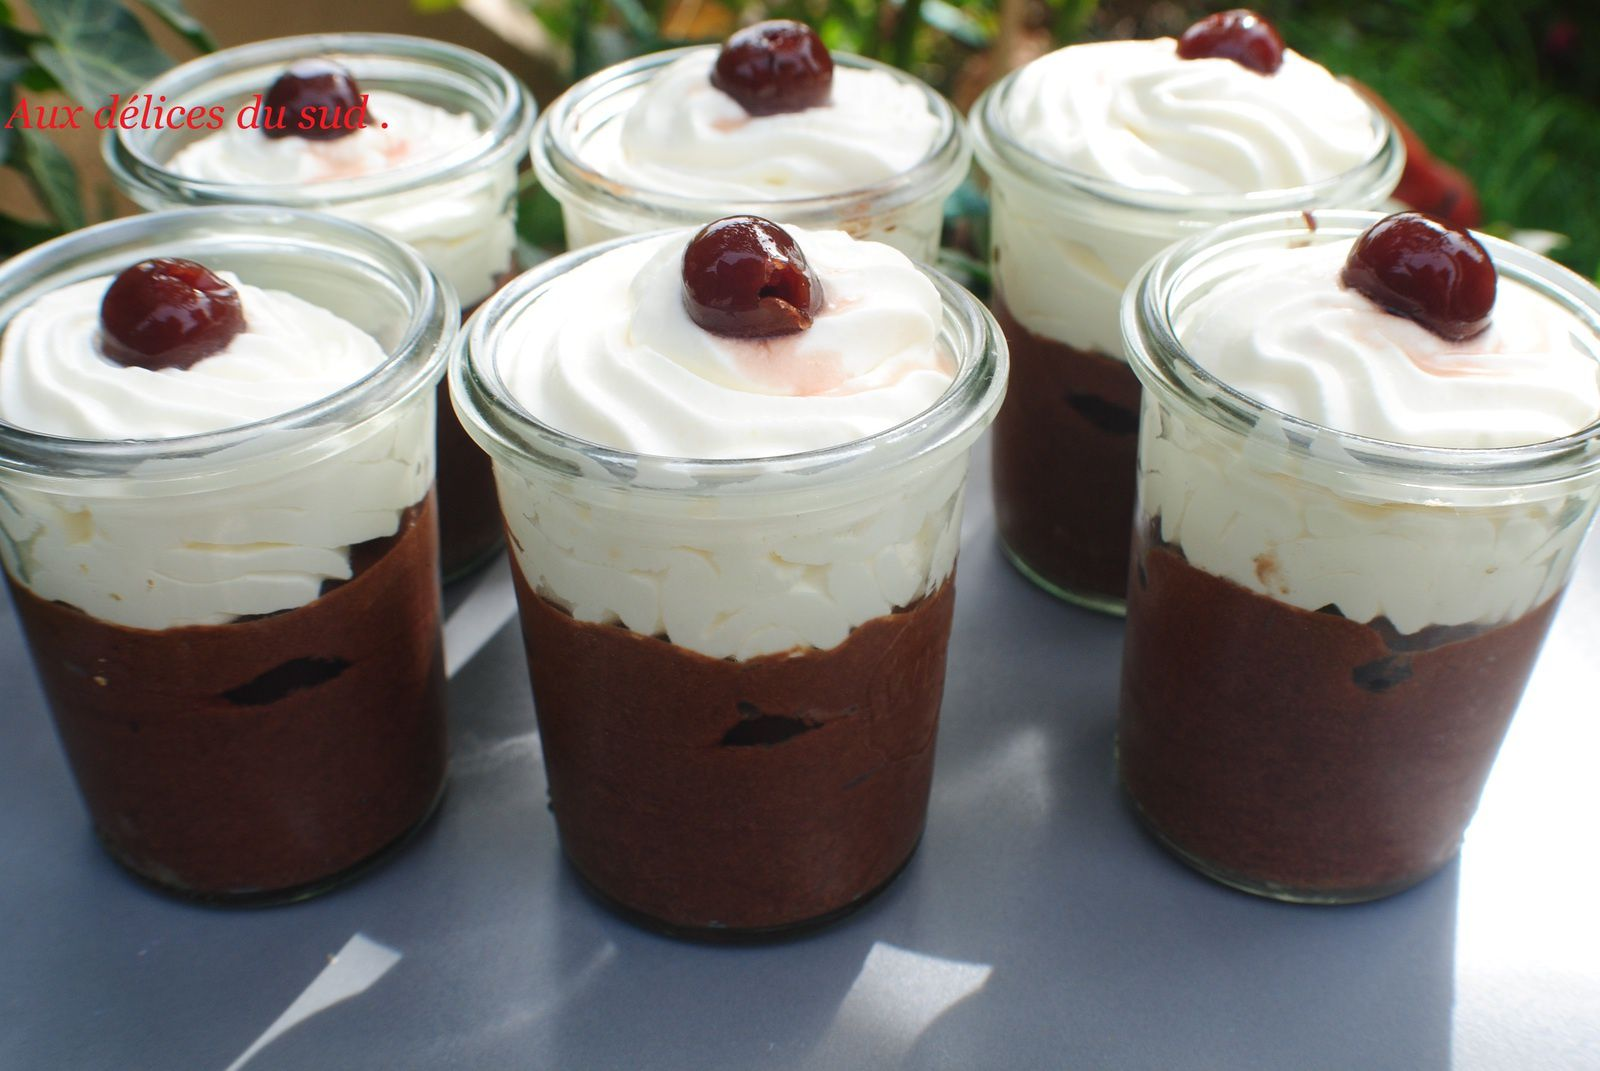 Mousse au chocolat , cerises au guignolet et chantilly à l'orange